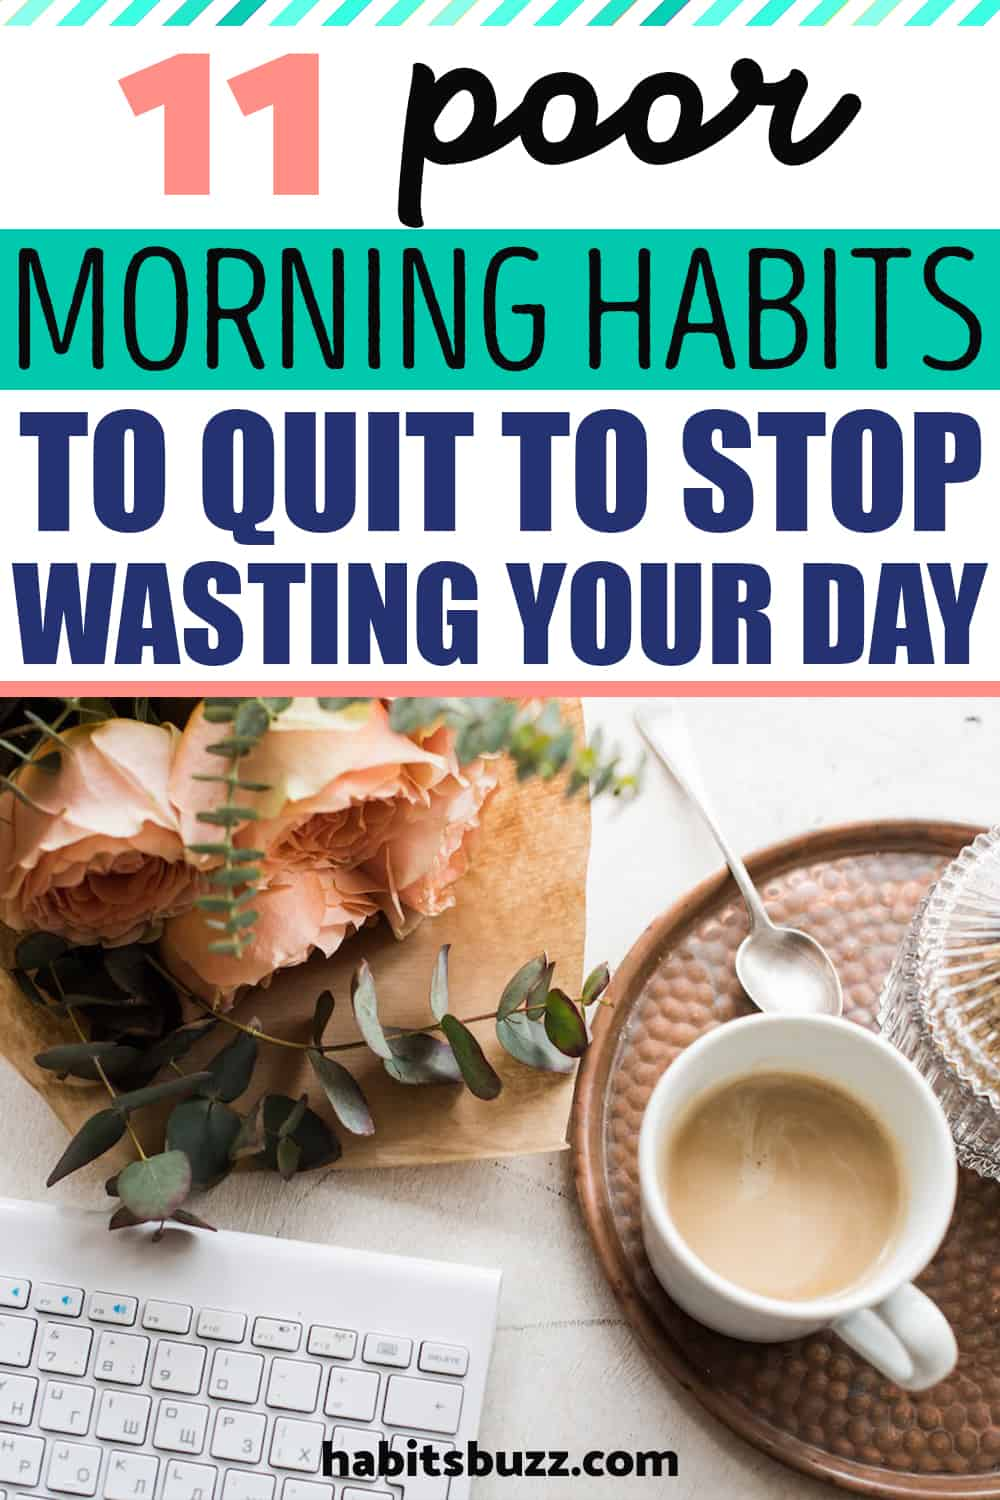 Bad morning habits to quit